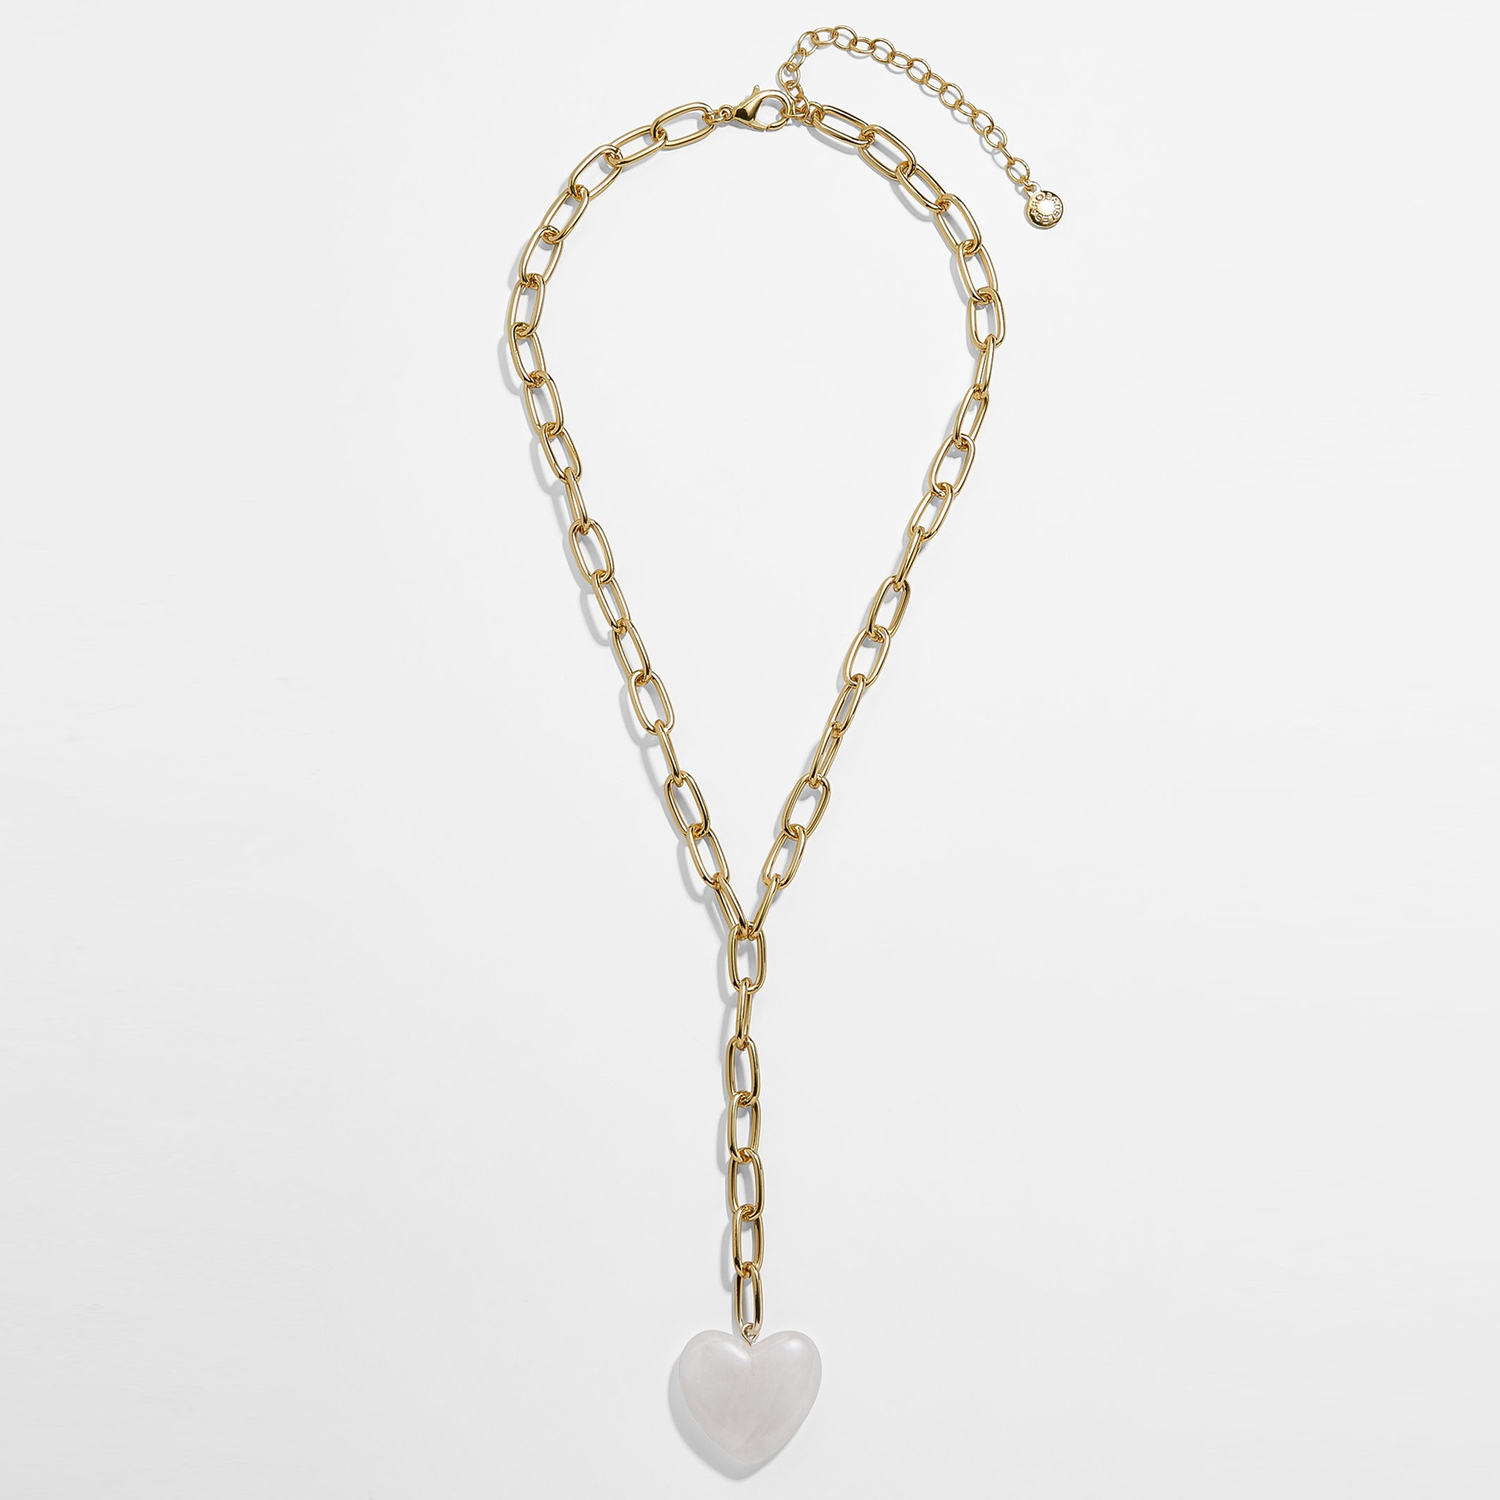 Xo Hera Resin Y-chain Necklace